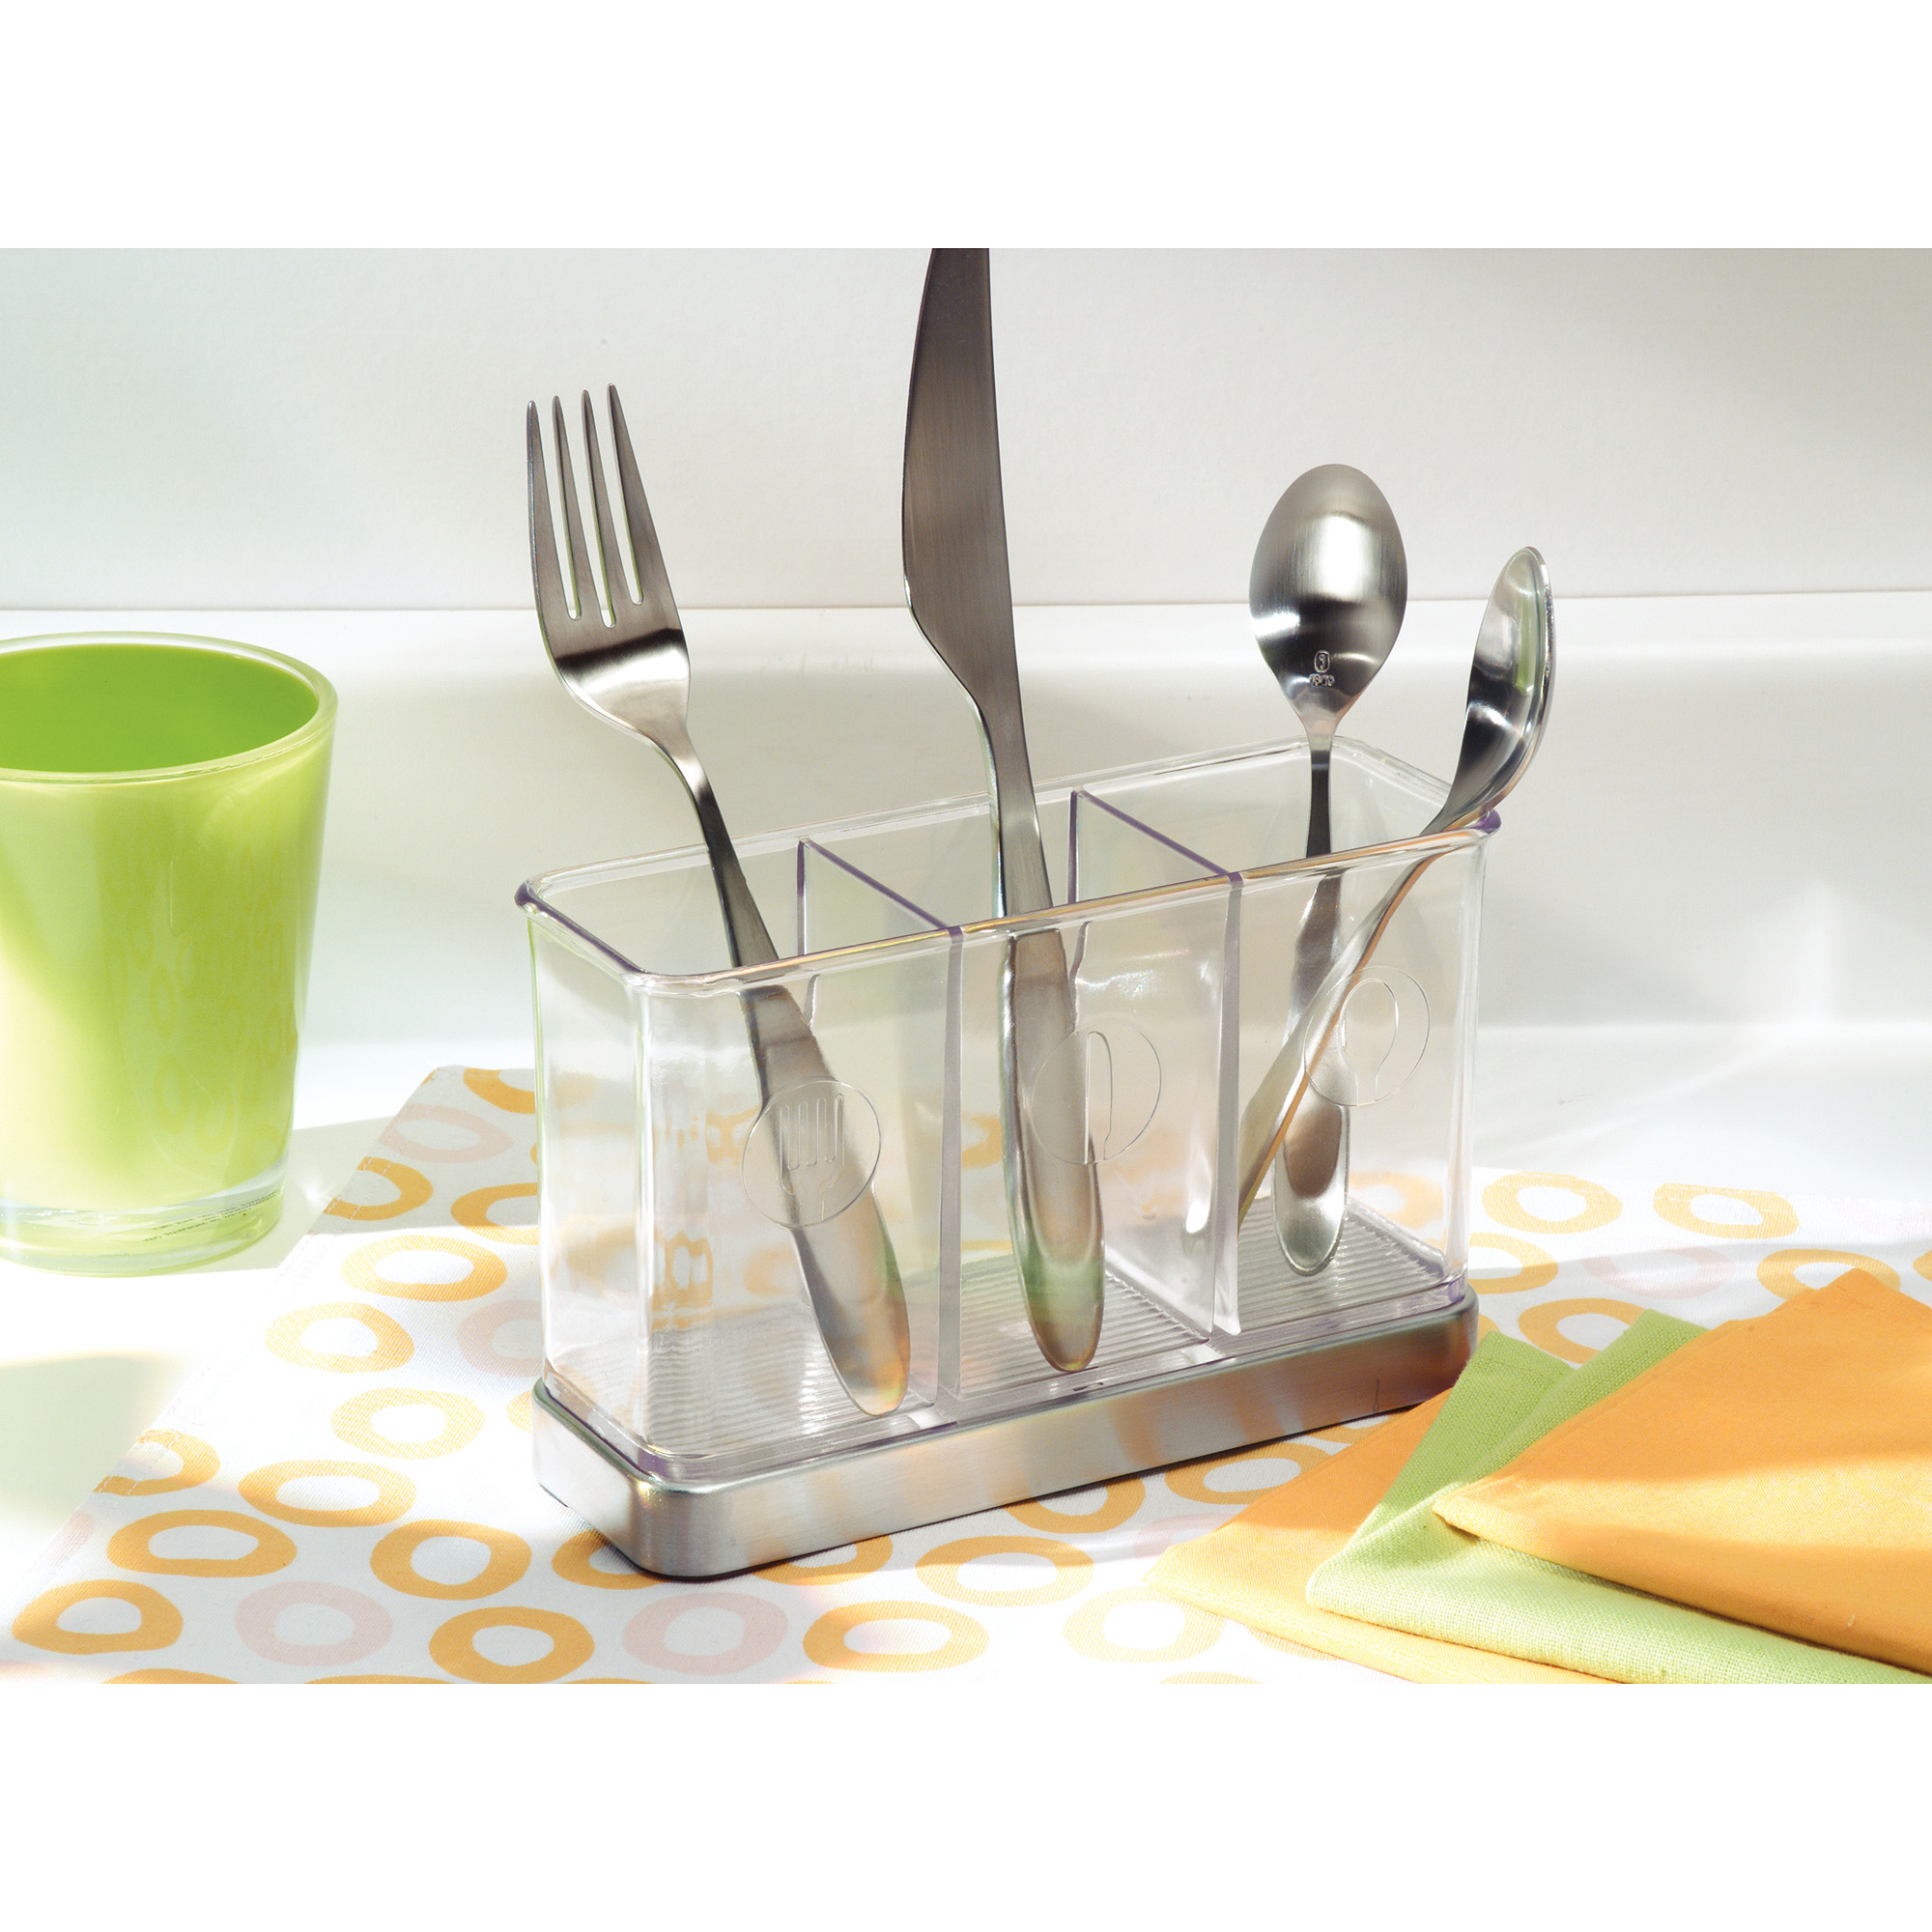 InterDesign Forma Utensil, Spatula, Silverware Holder For Kitchen  Countertop Storage, Brushed Stainless Steel And Clear   Walmart.com